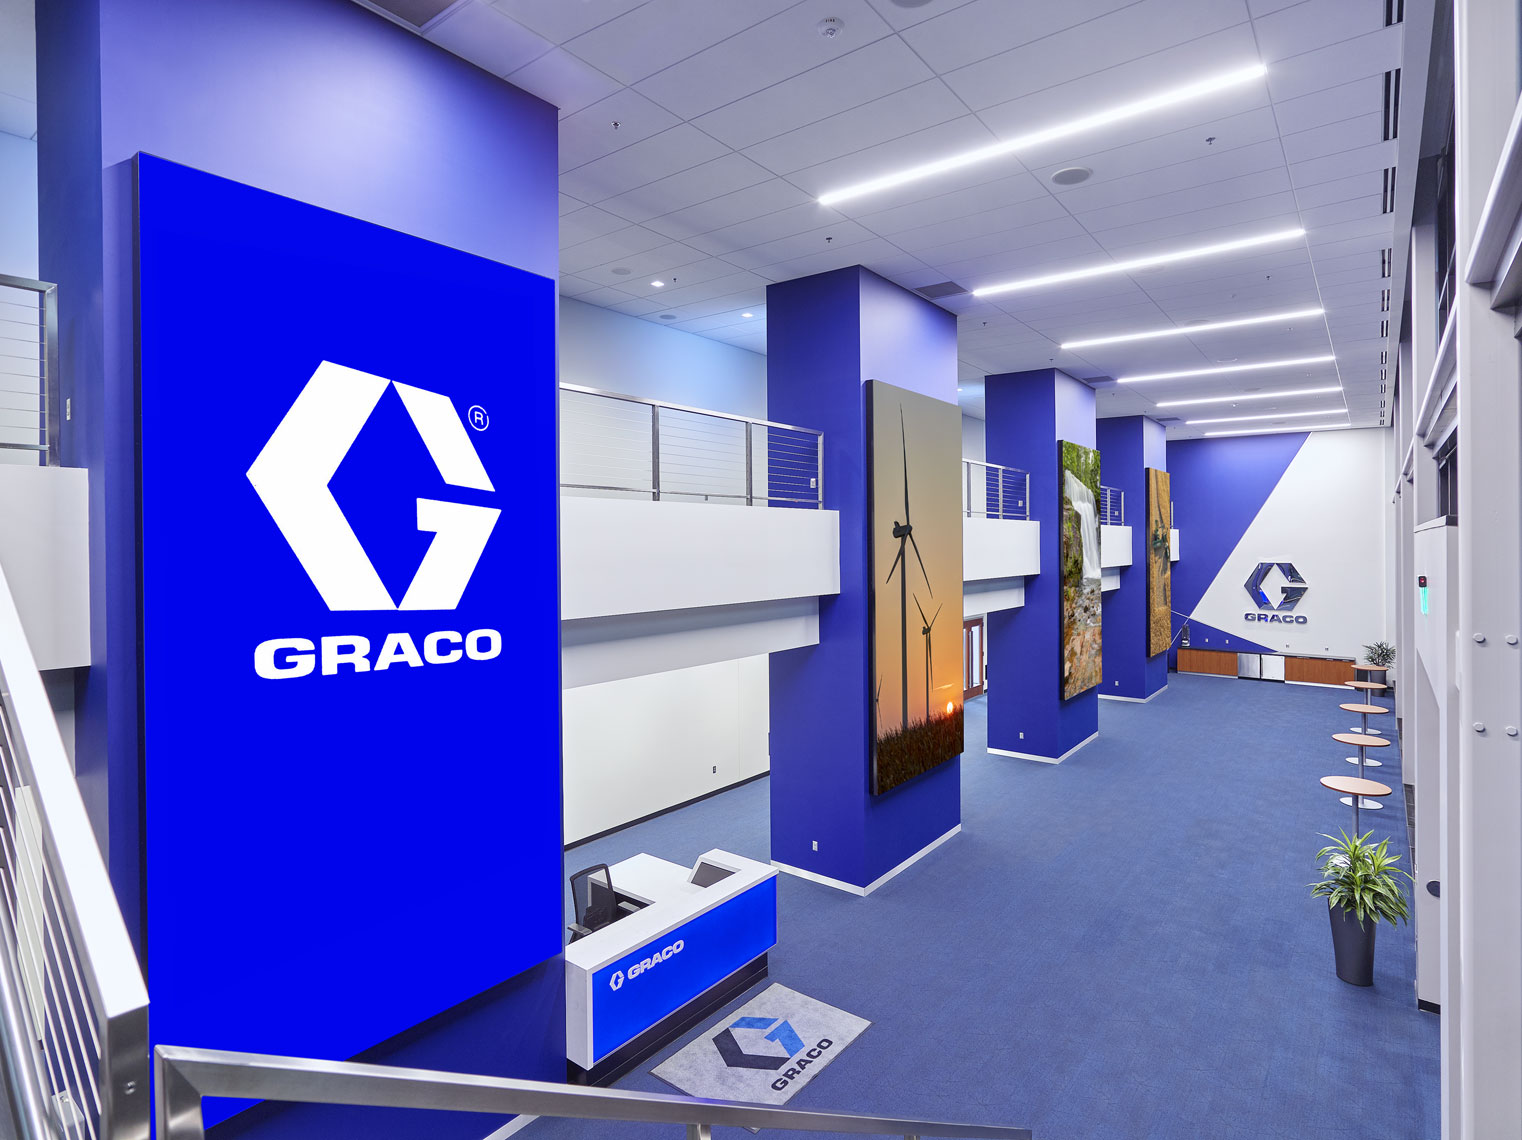 Graco/hallway/interior architecture photograph